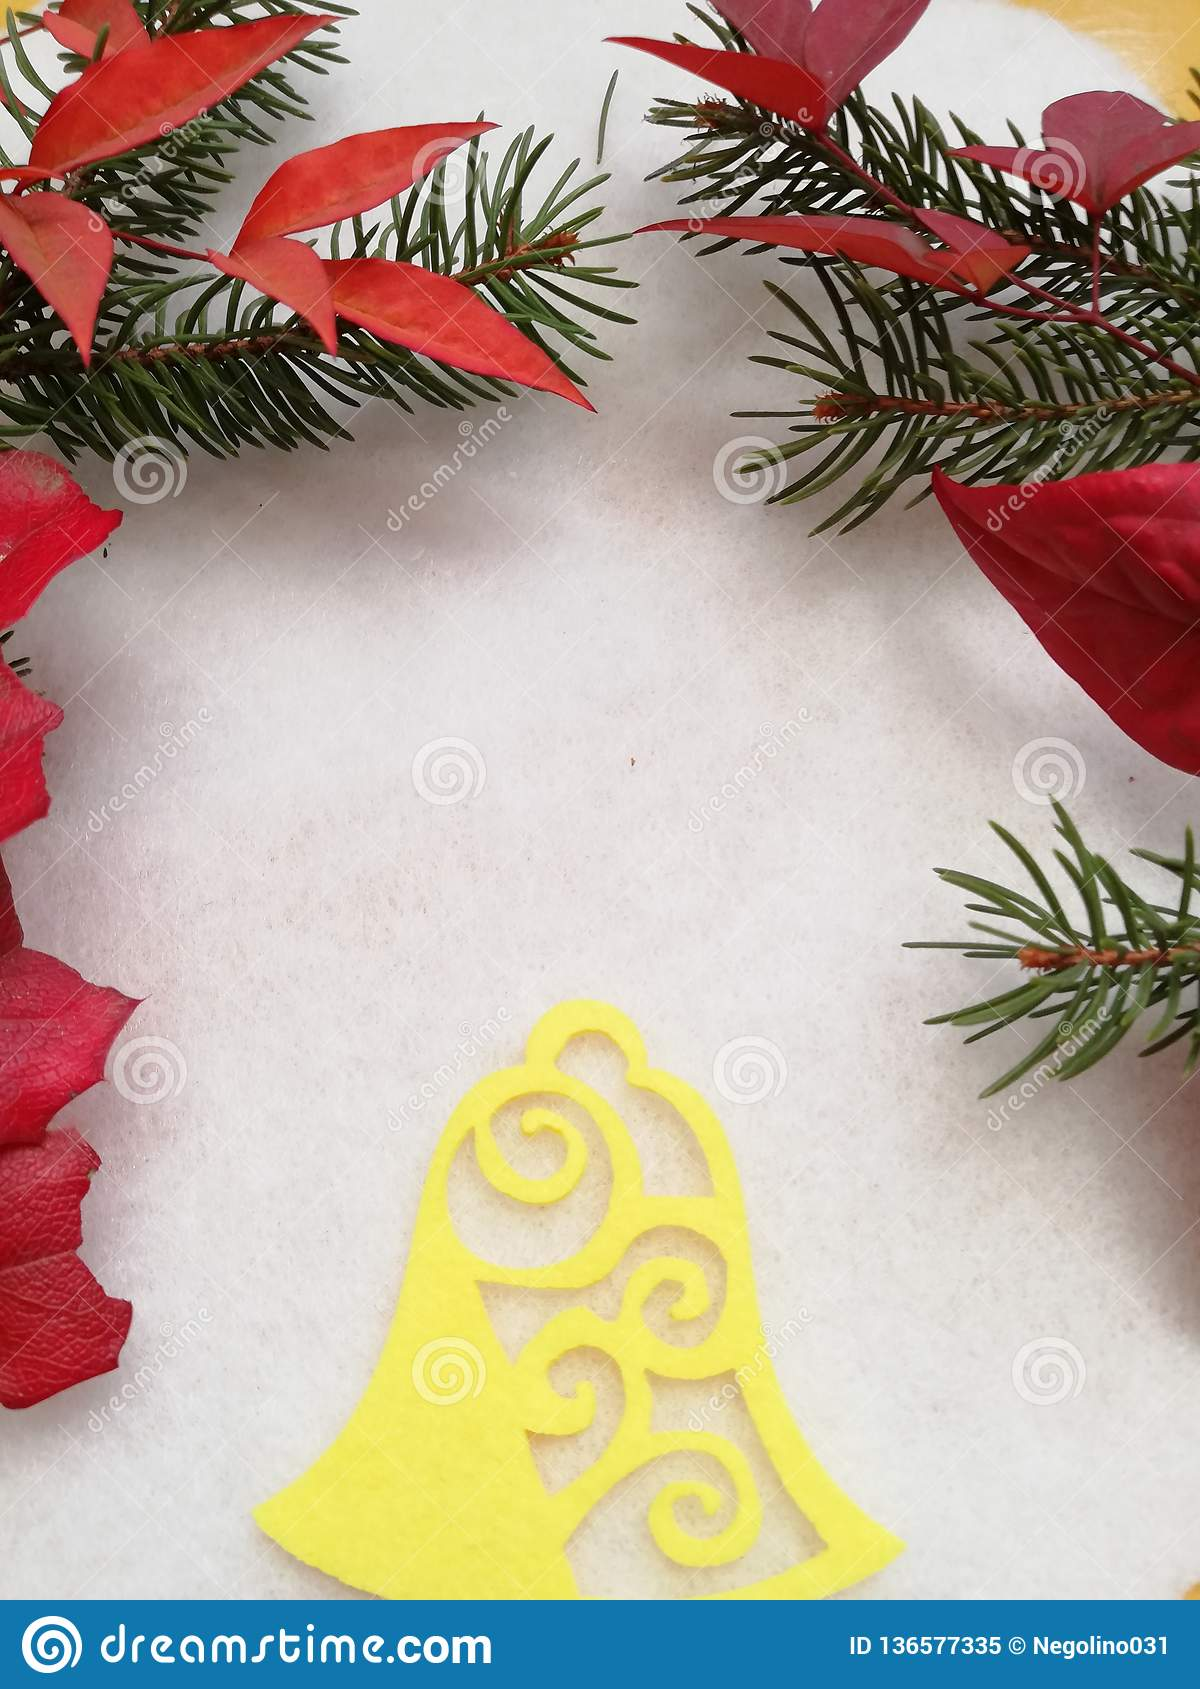 Auguri Di Buon Natale We Wish You A Merry Christmas.Elegant Greeting Card For Winter Holiday Stock Image Image